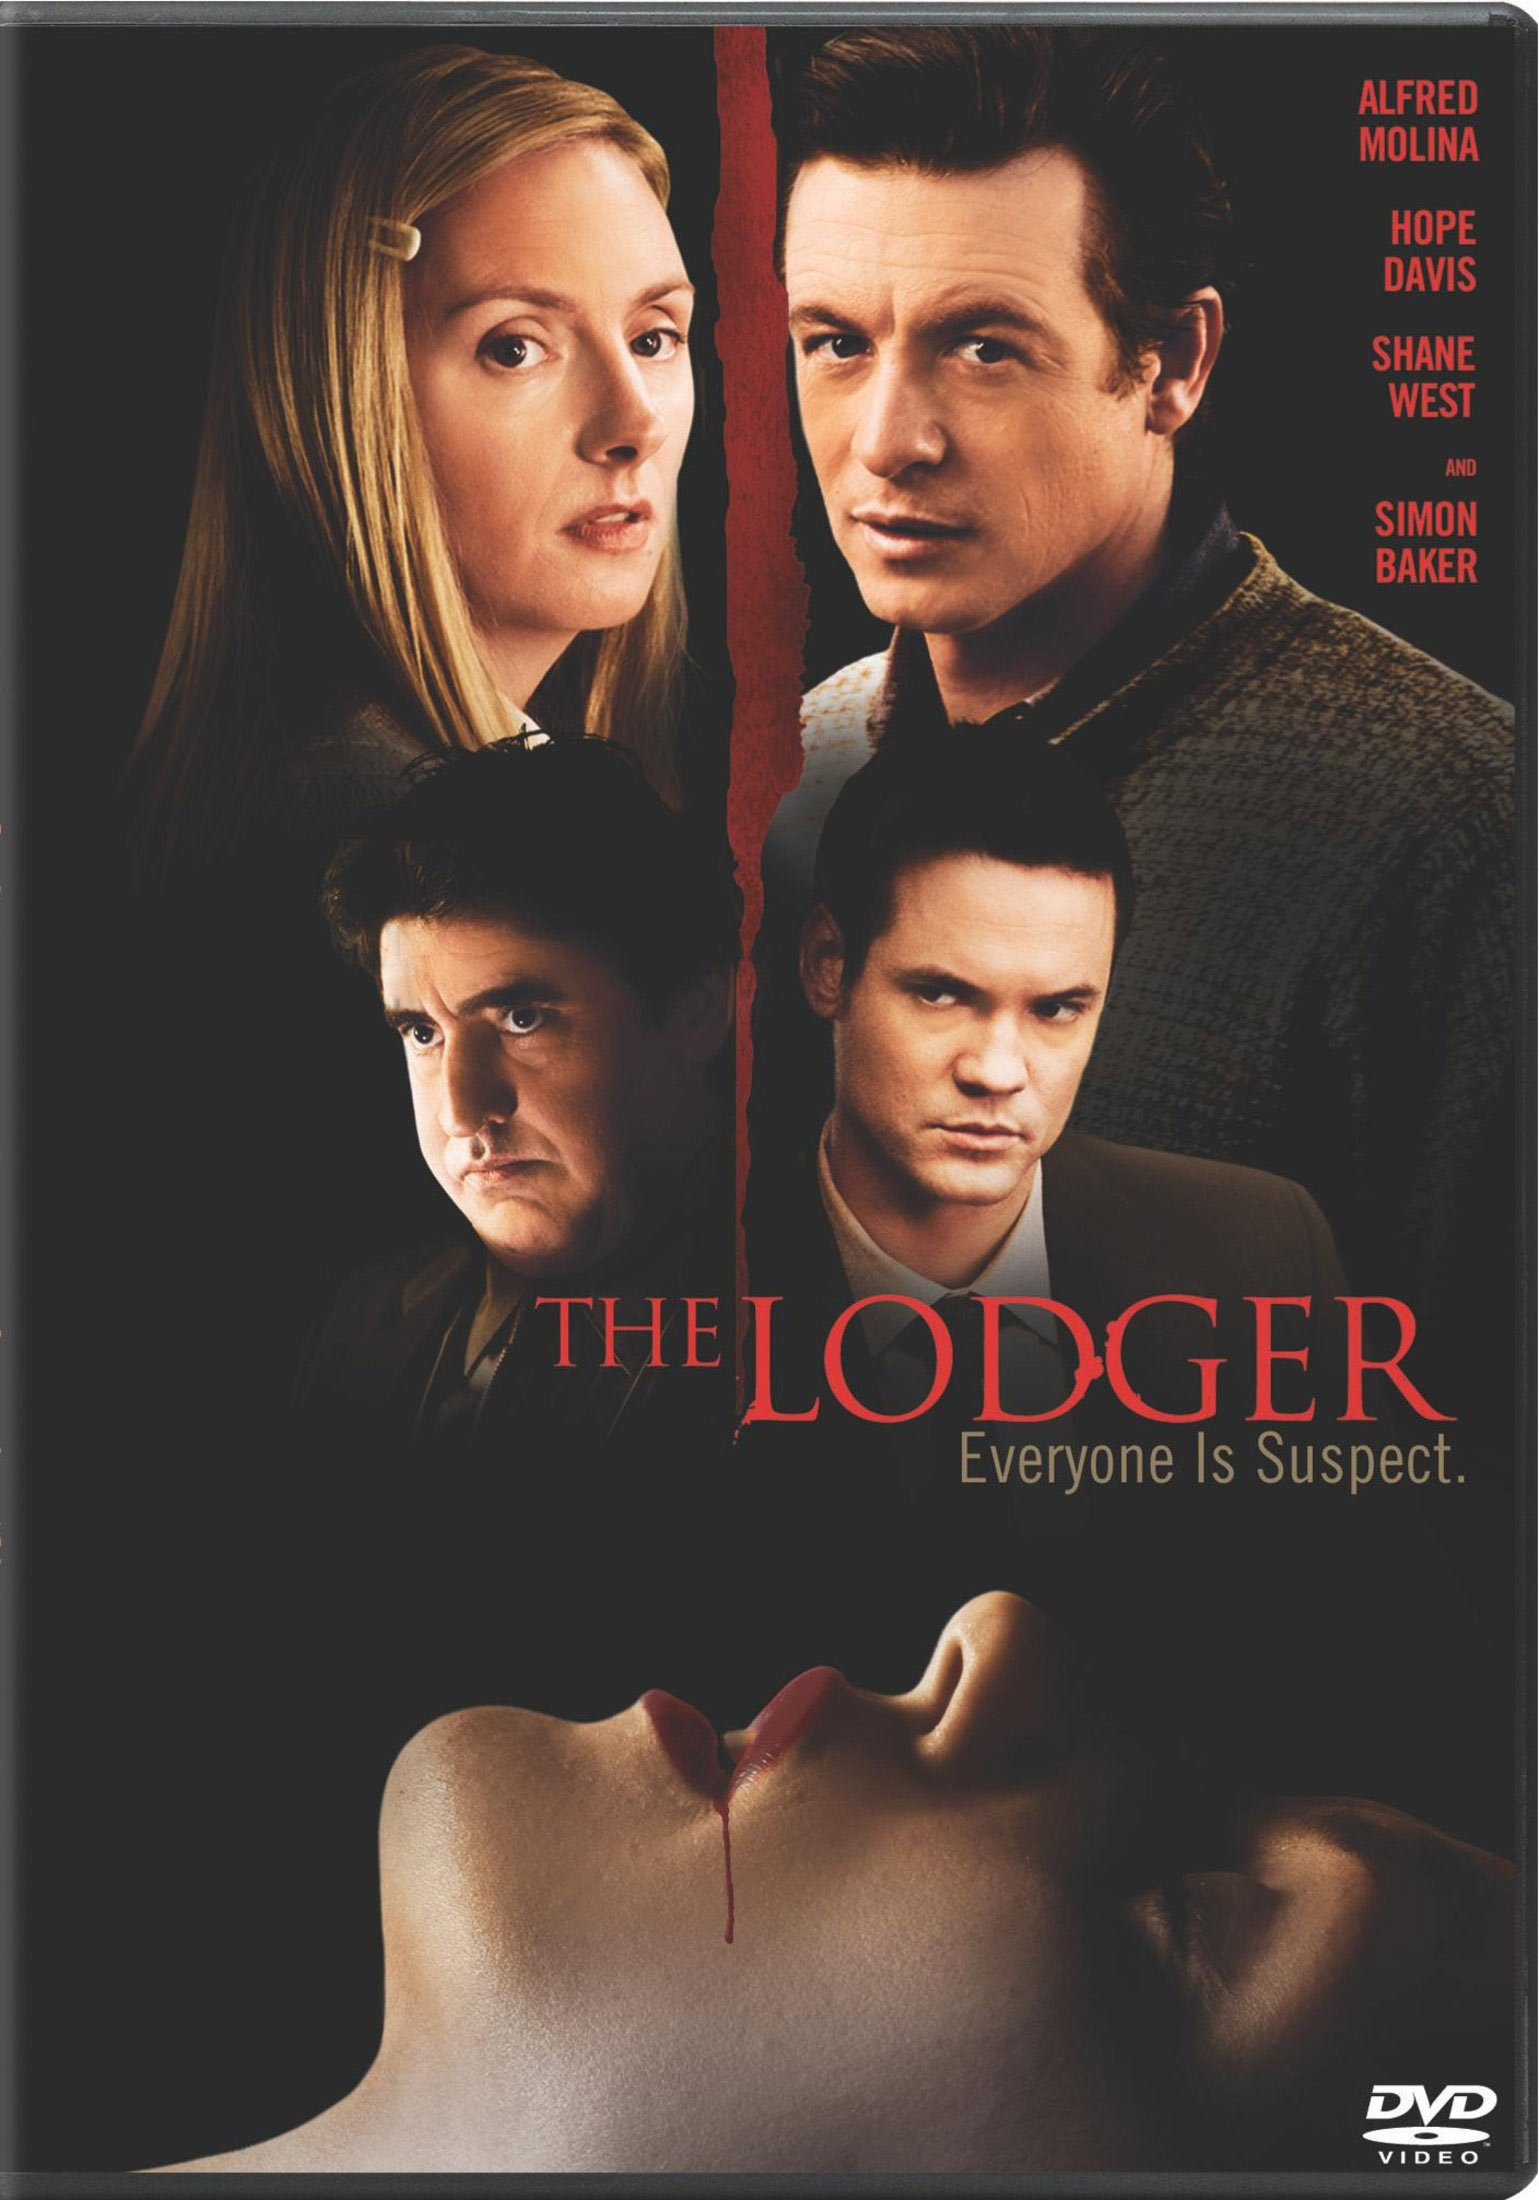 The Lodger (Subtitled, Dubbed, Dolby, AC-3, Widescreen)